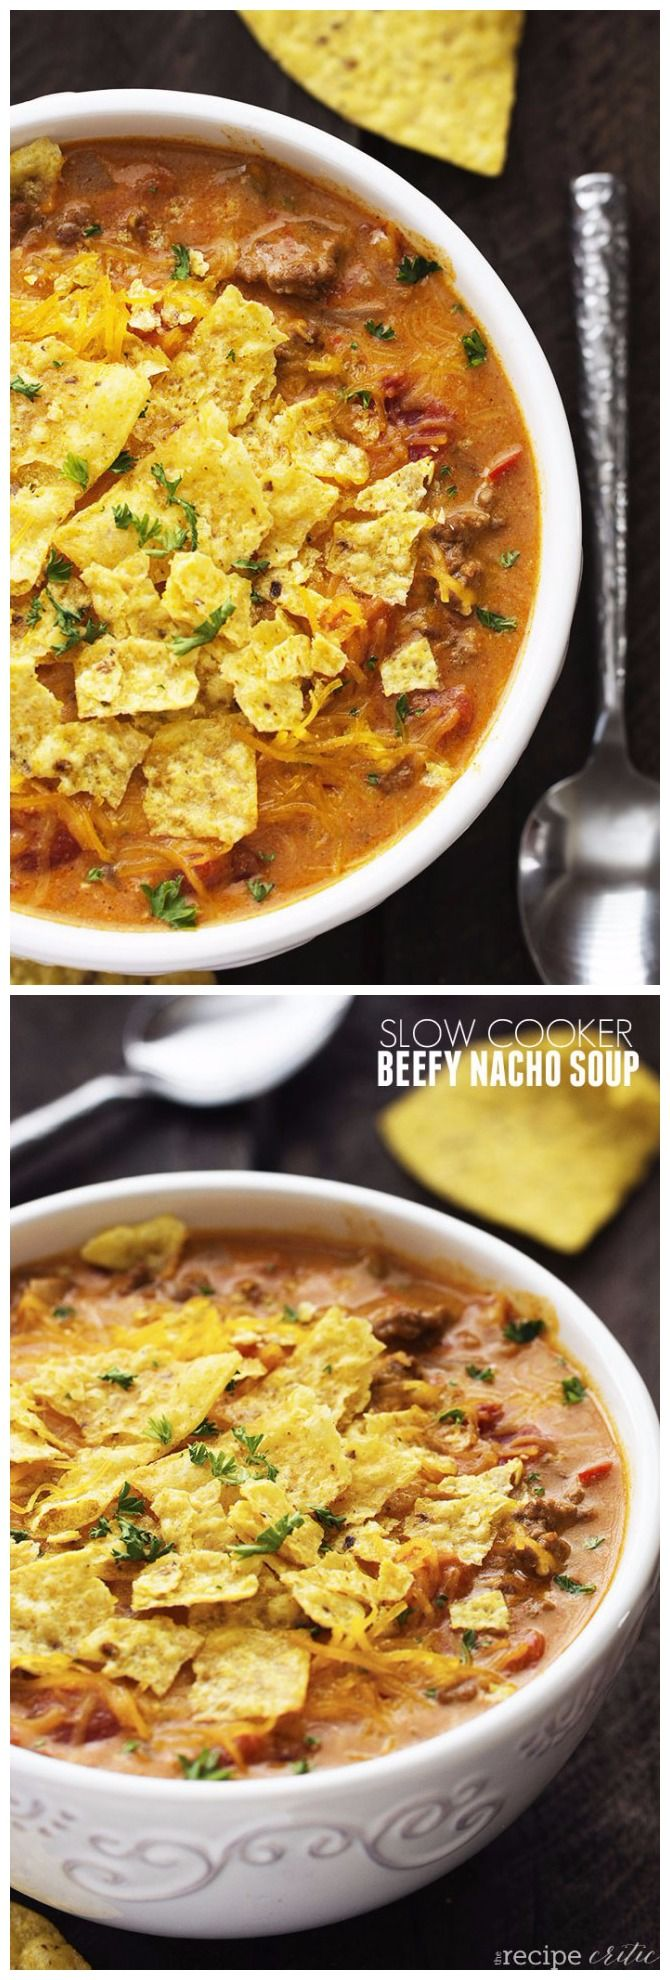 Slow Cooker Beefy Nacho Soup. I made this this with stew meat! It was so easy, and so delicious!